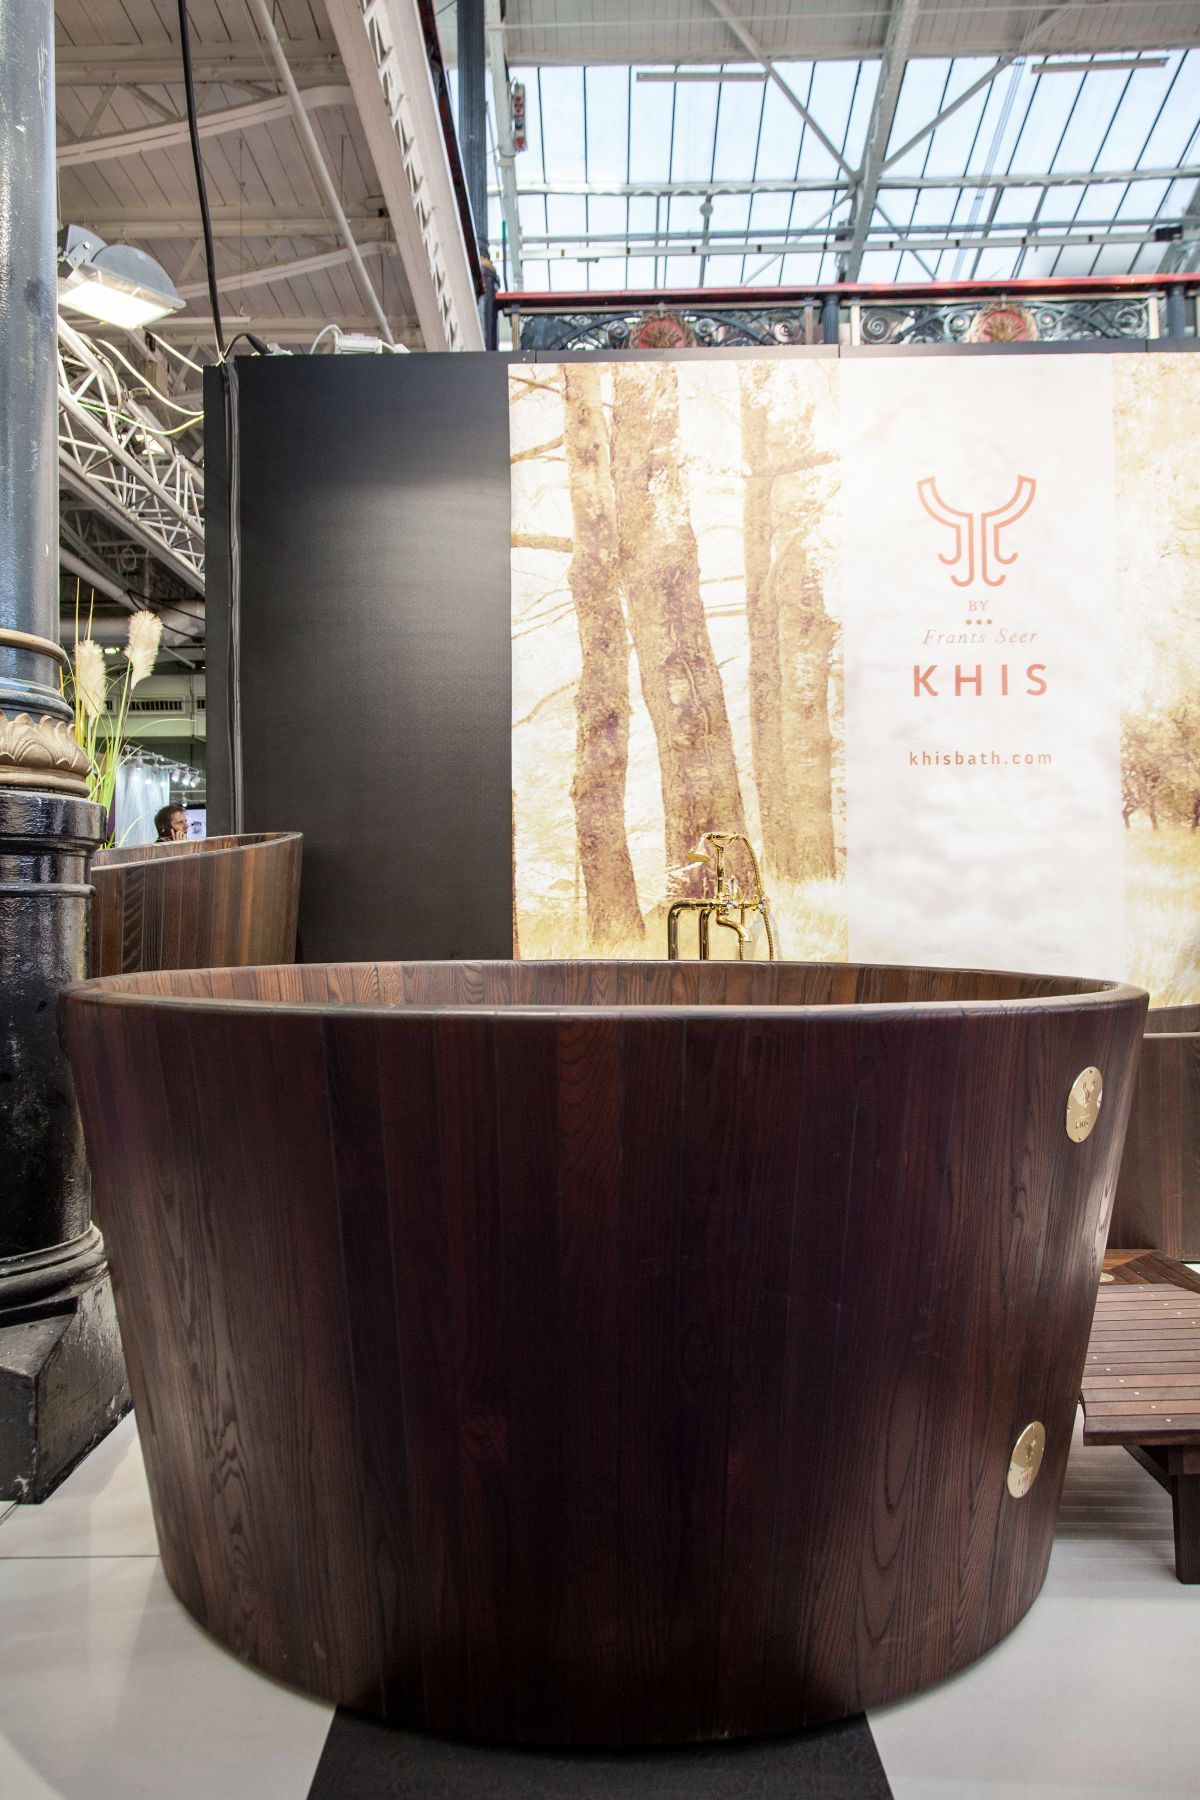 A KHIS wooden bathtub is dark brown, almost black because of the way the wood is thermally processed. Besides giving it a luxe look, the process makes it extraordinarily water-resistant and durable.